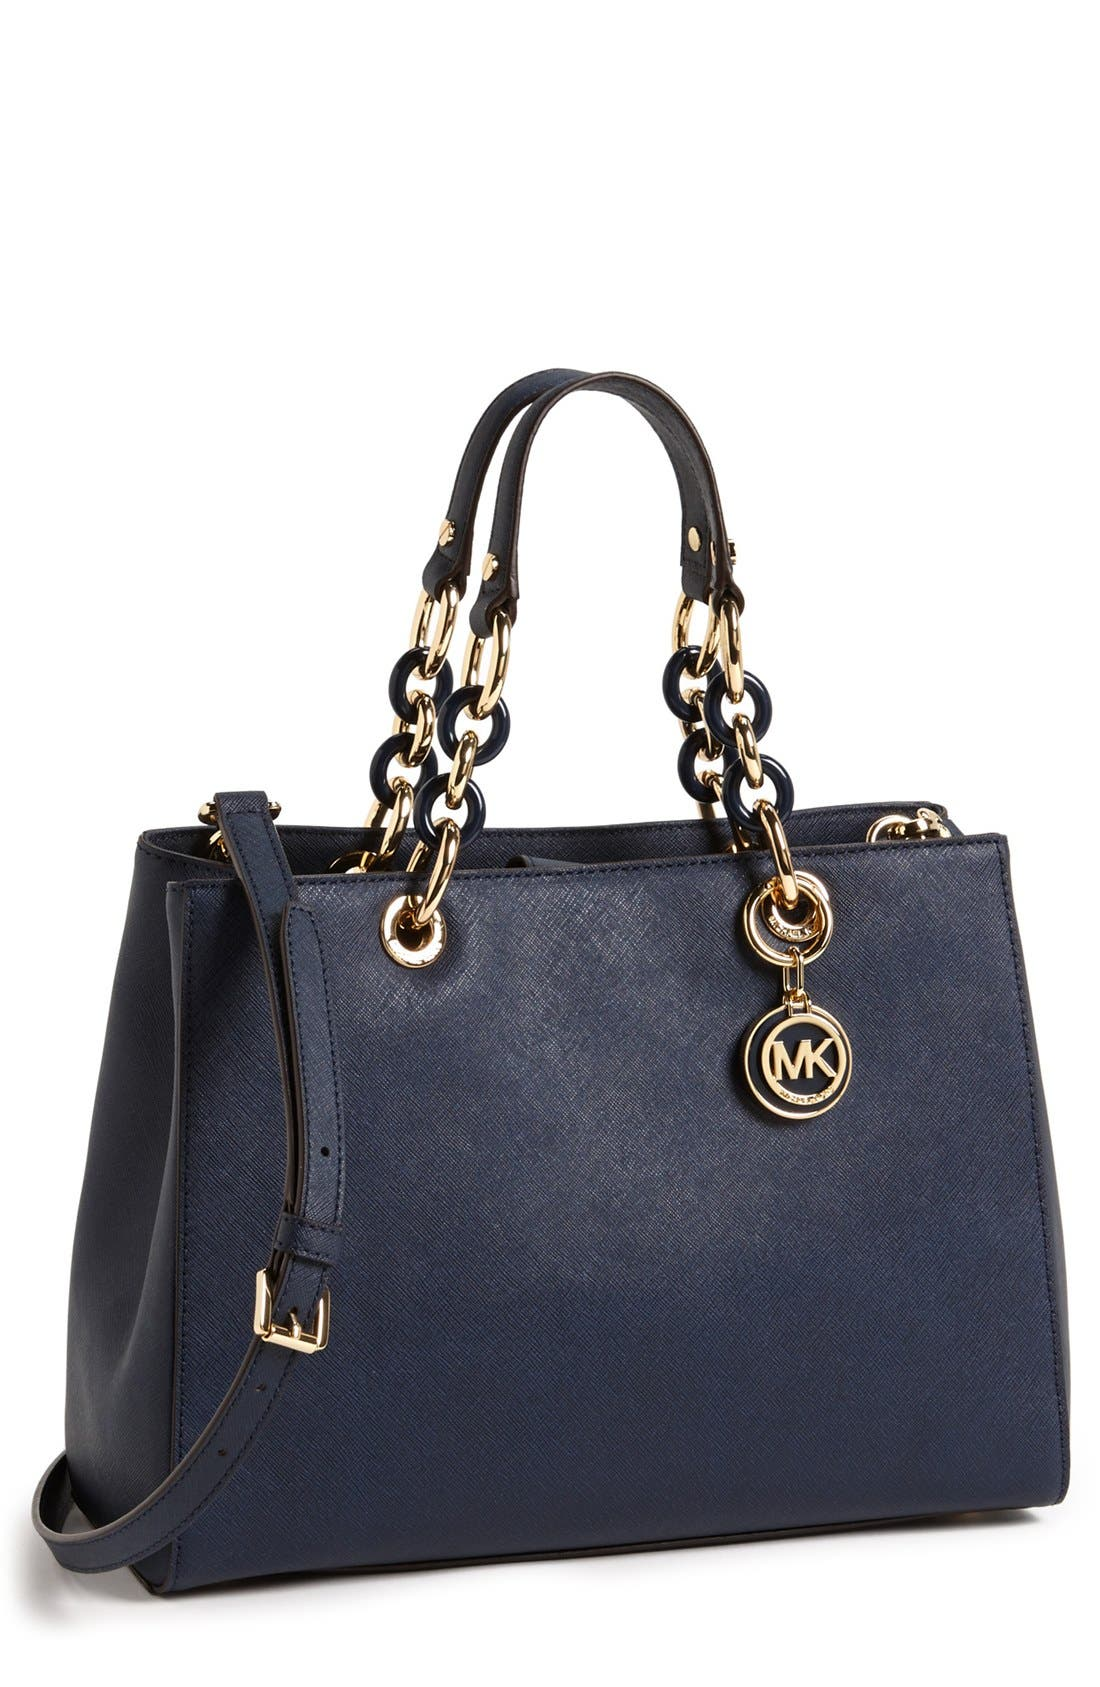 Main Image - MICHAEL Michael Kors 'Cynthia' Saffiano Leather Satchel